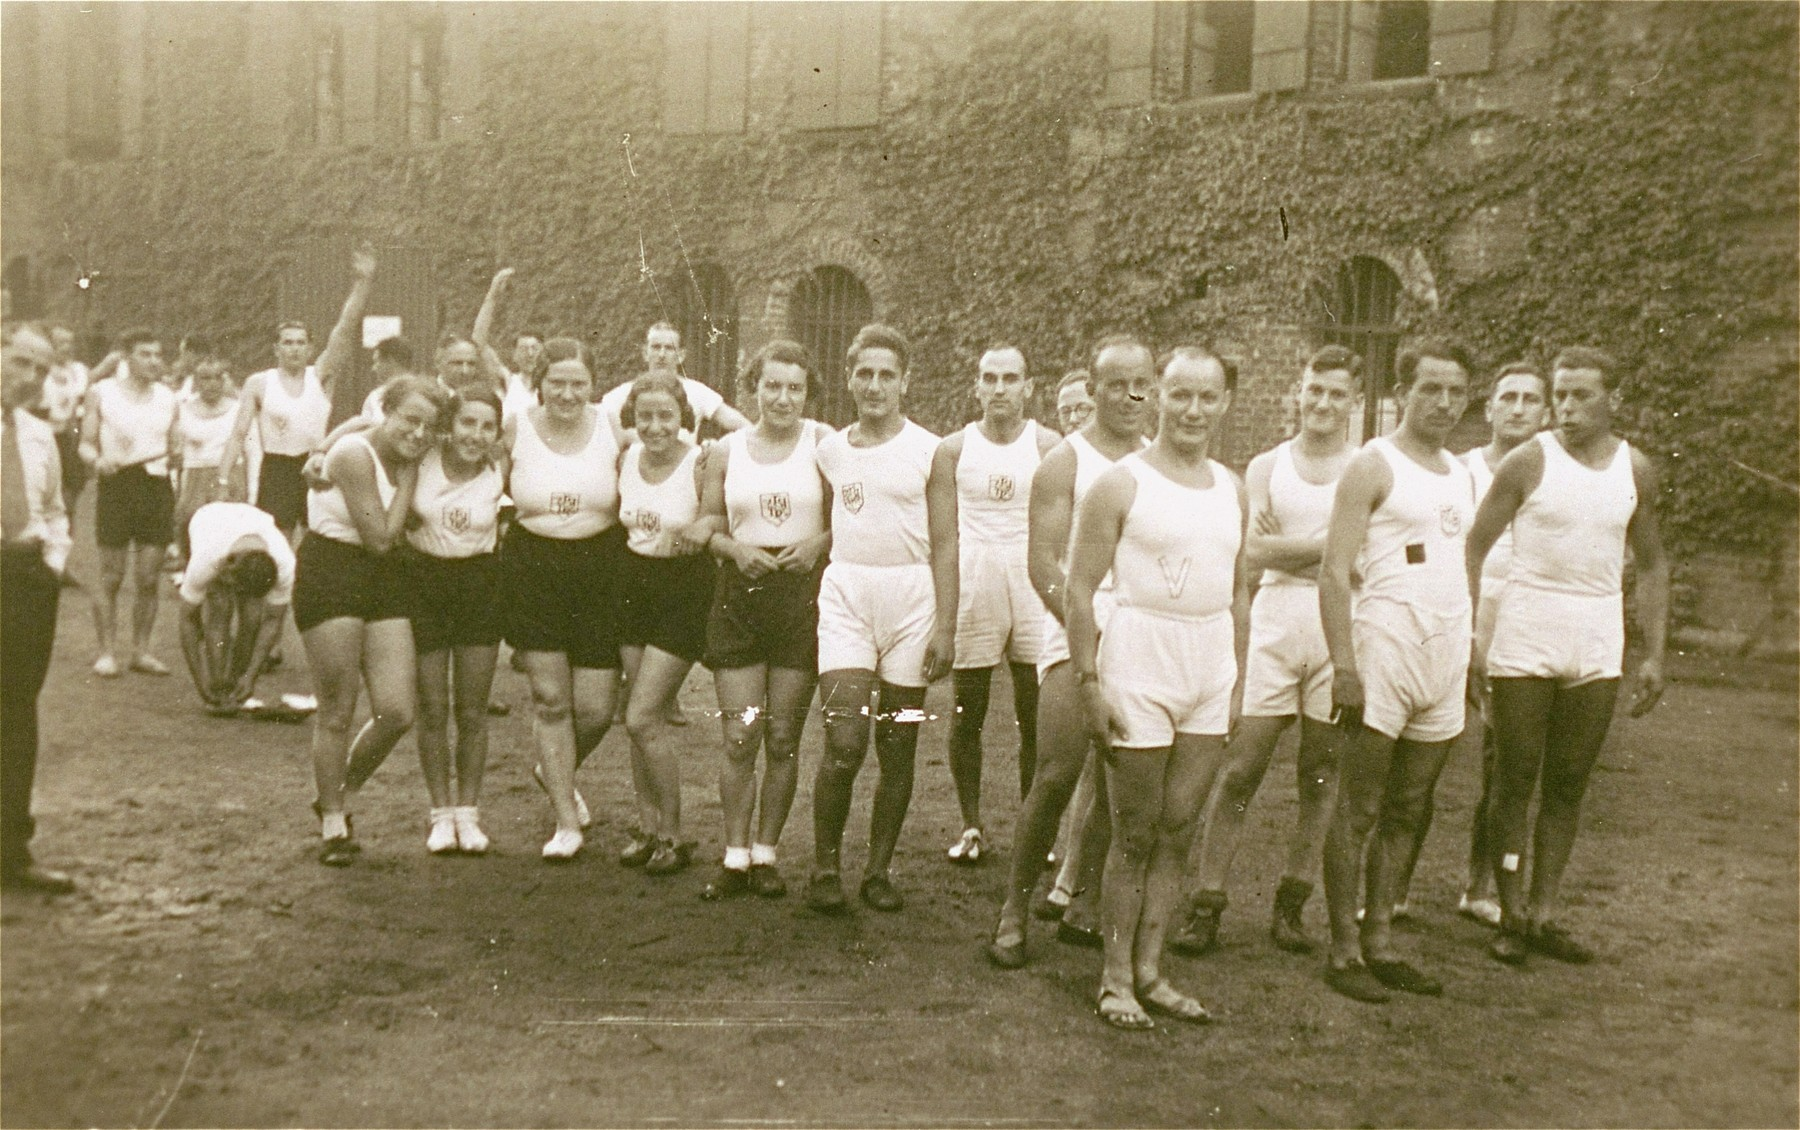 Members of the Reichsbund juedischer Frontsoldaten sports club at the West German Meisterschaft competition in Cologne.  Ilse Dahl is pictured fifth from the right.